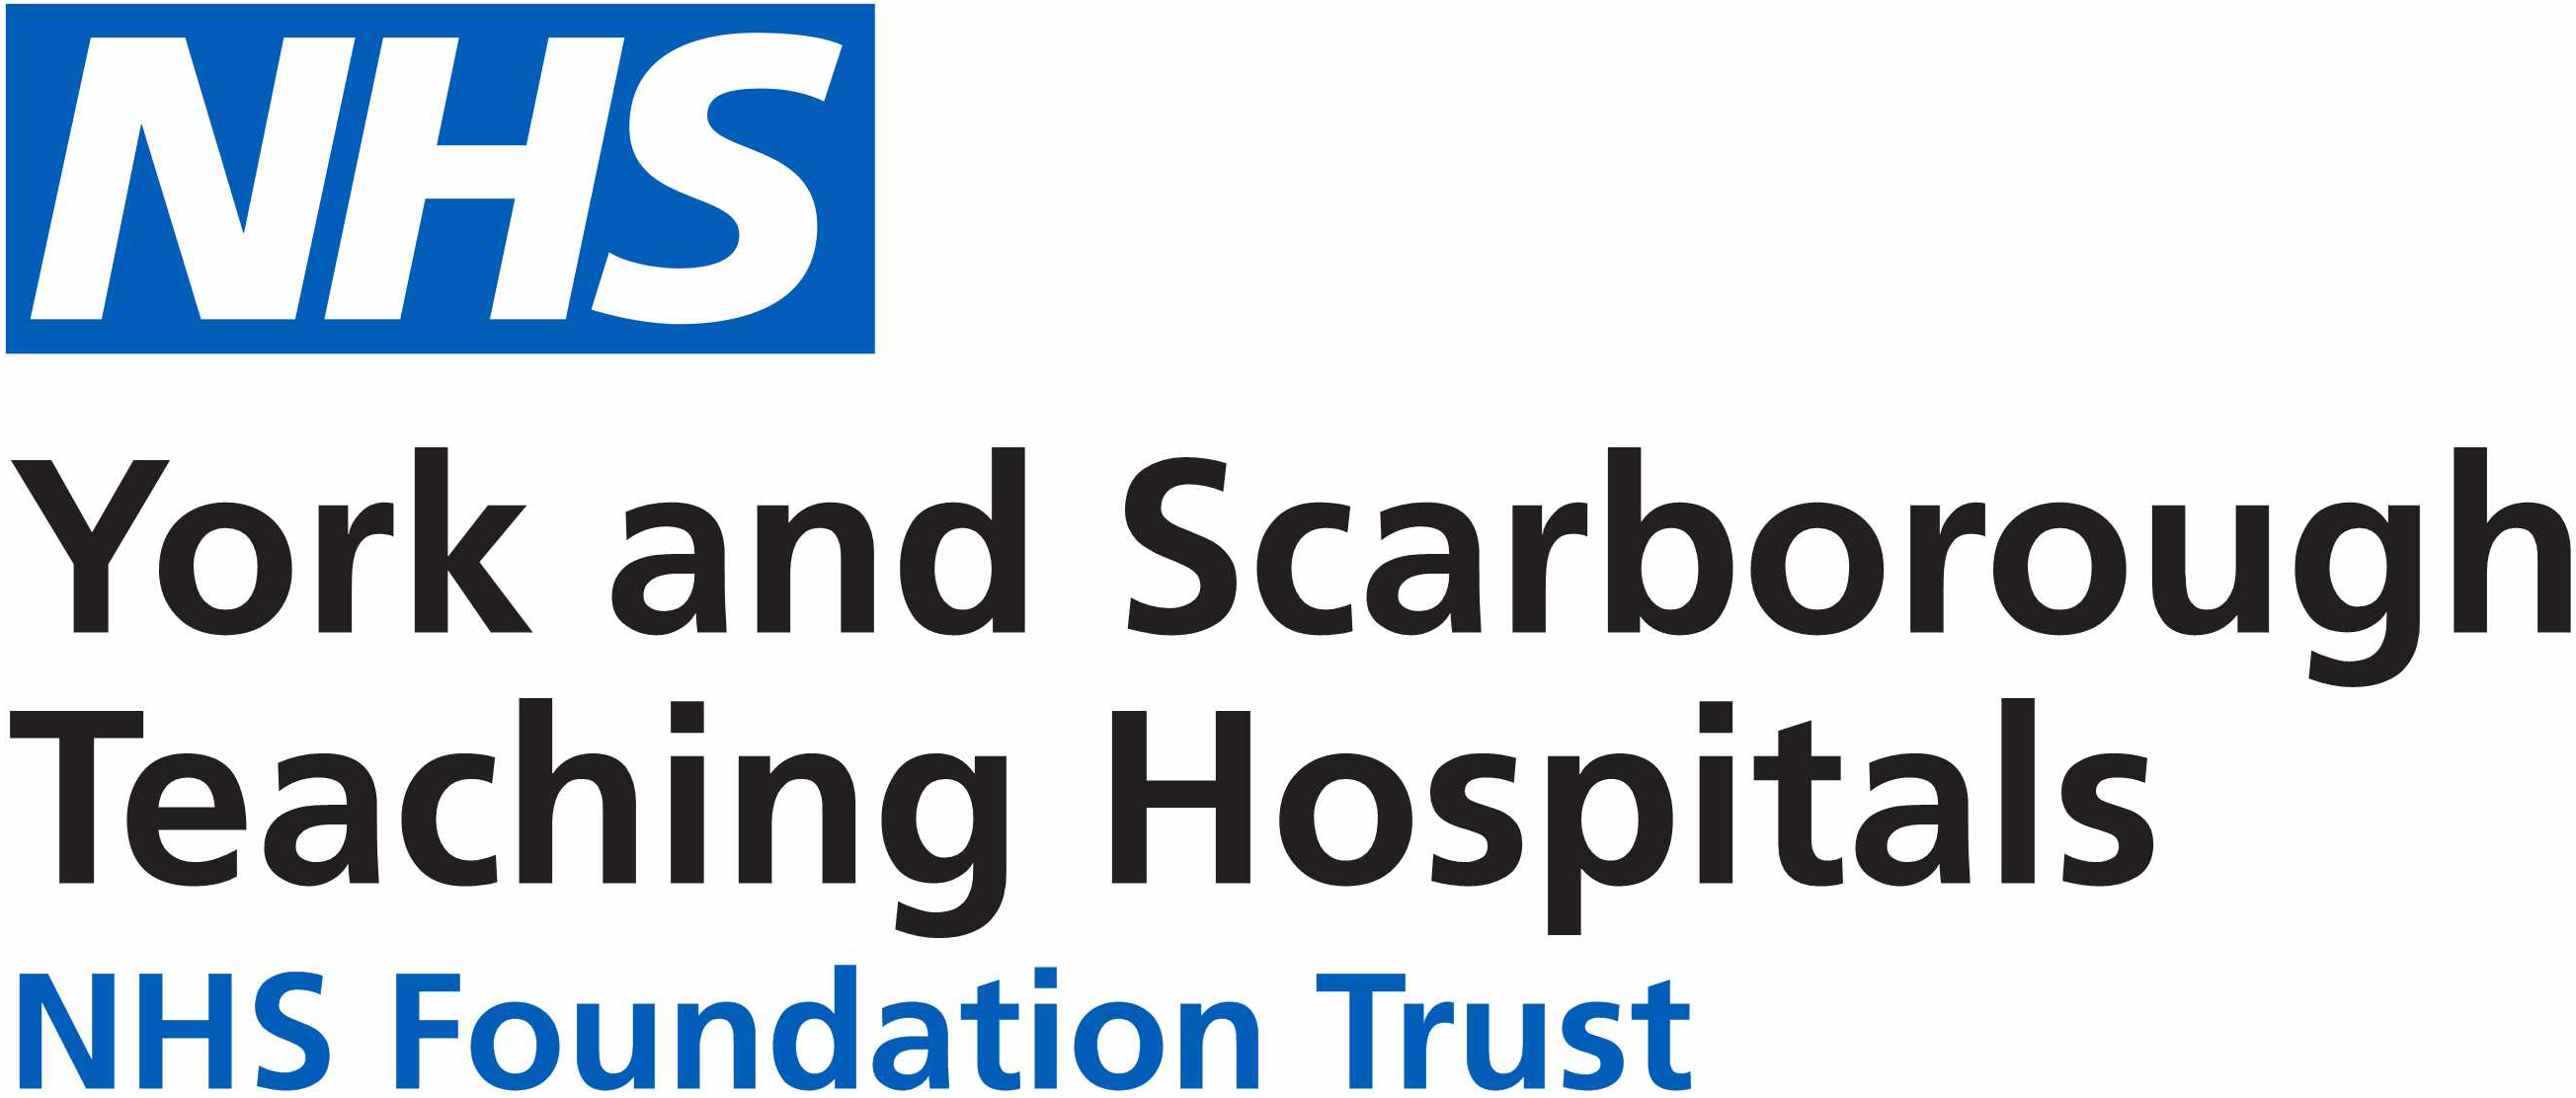 York and Scarborough Teaching Hospitals: NHS Foundation Trust